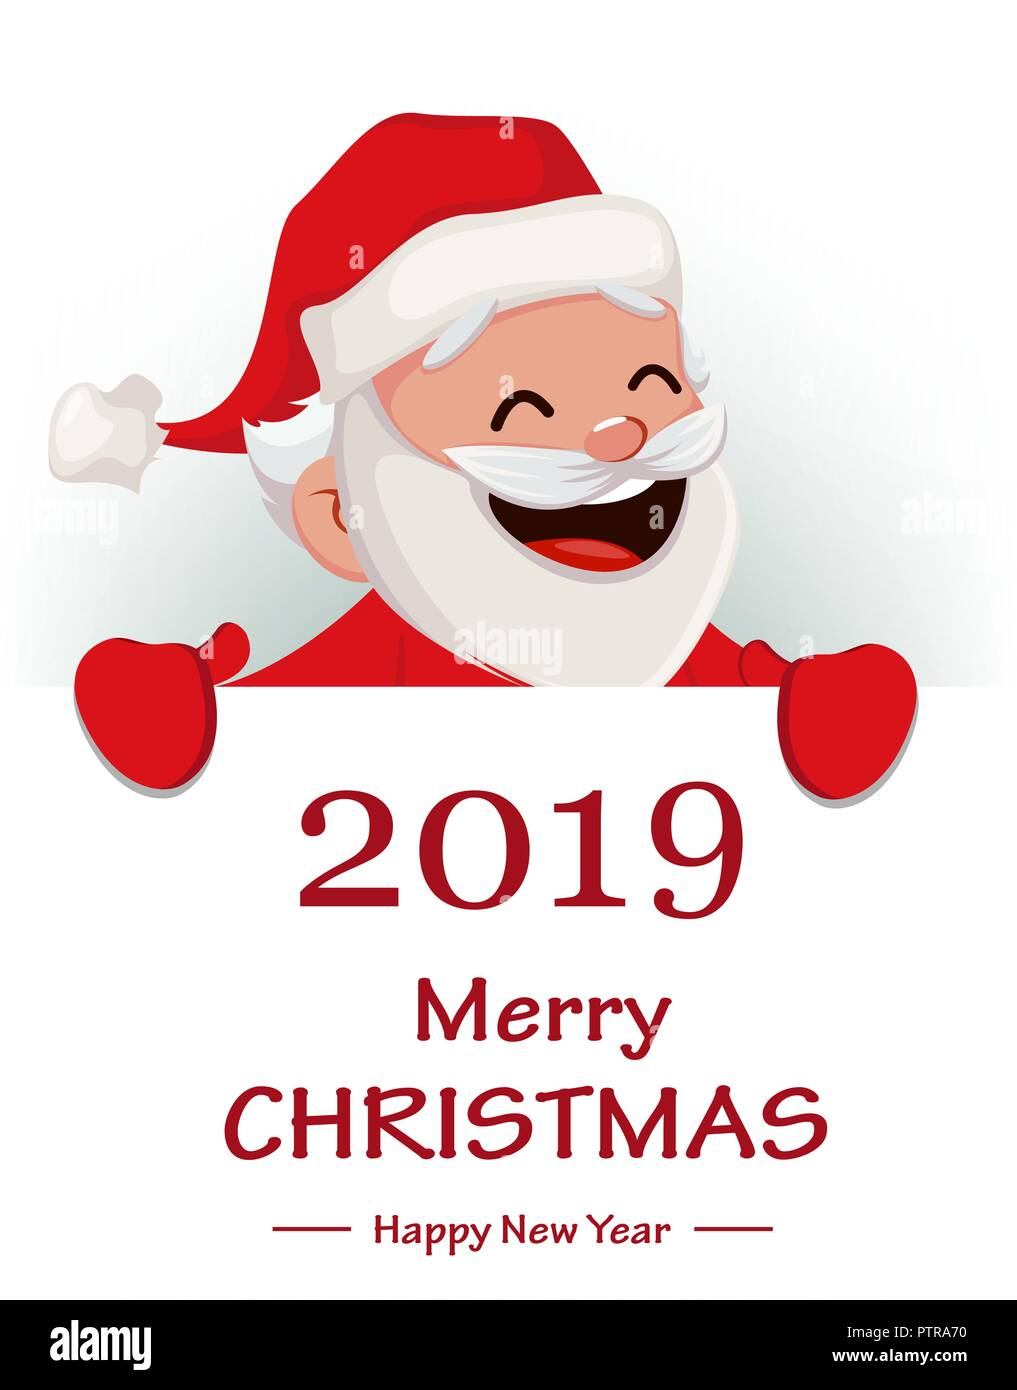 Merry Christmas Funny Santa Claus Cheerful Cartoon